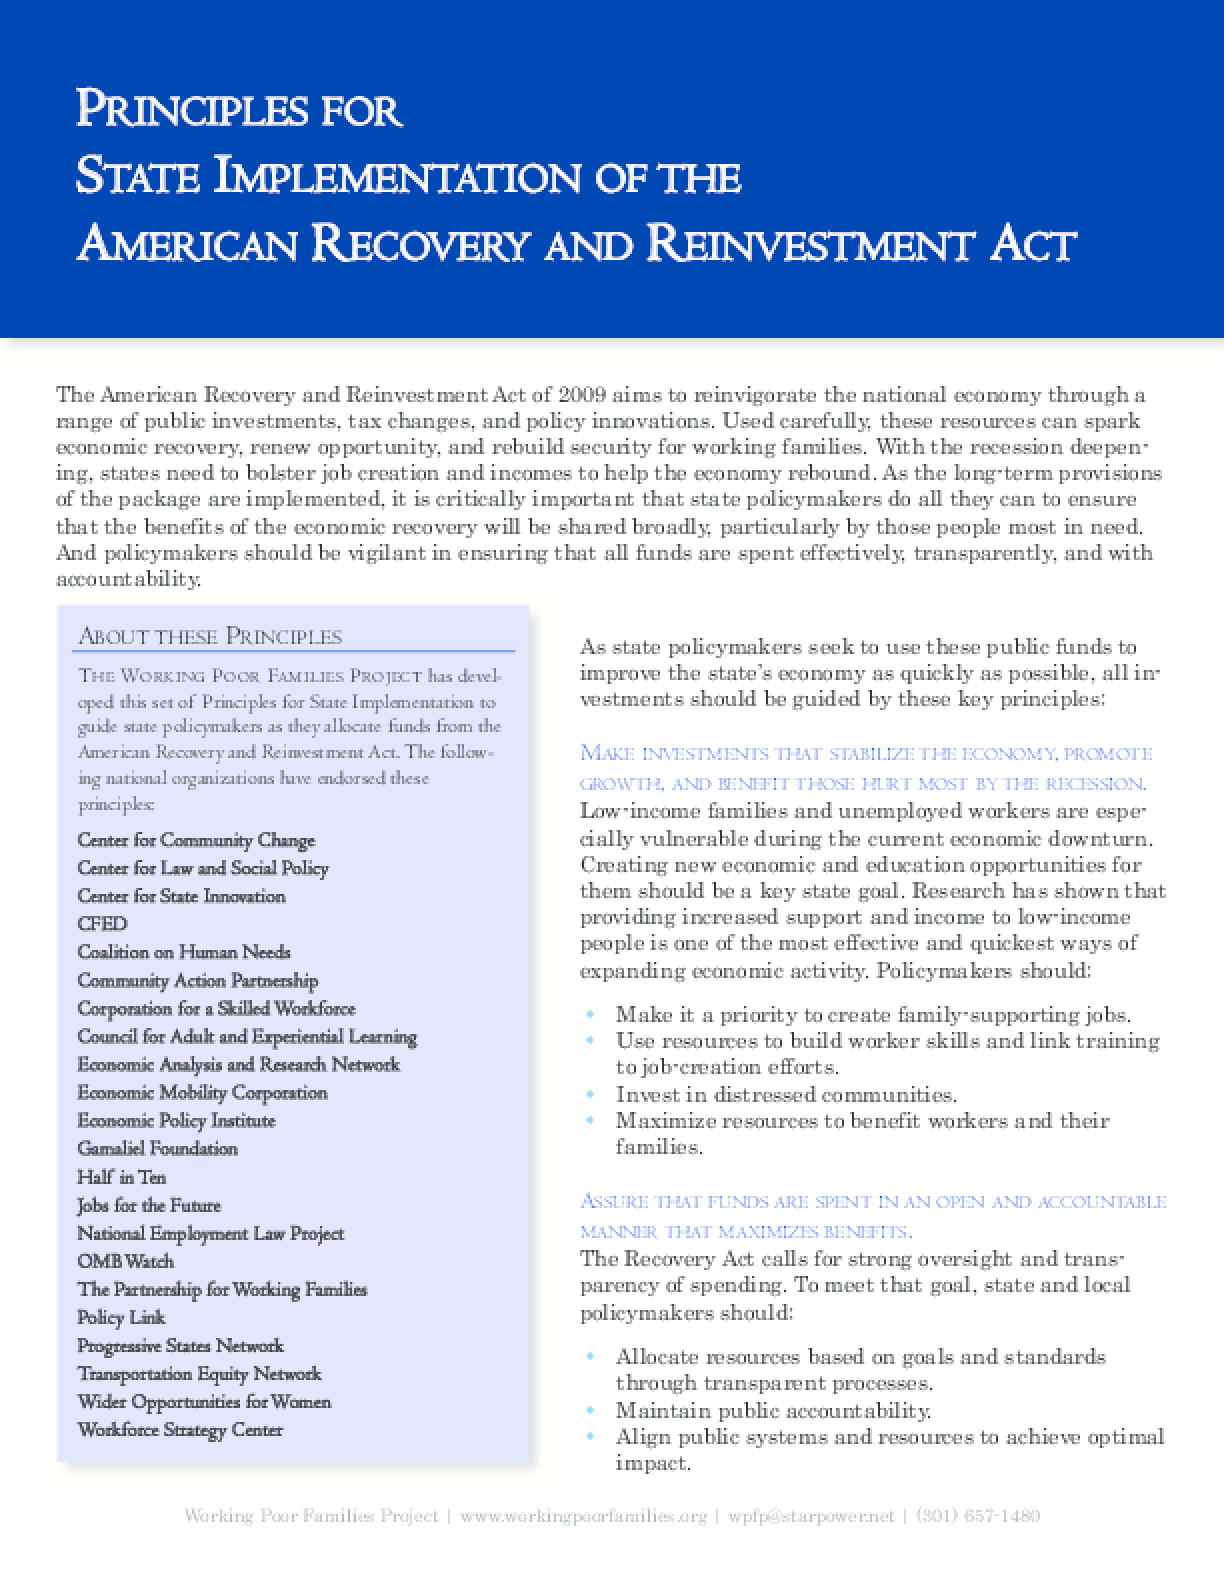 Principles for State Implementation of the American Recovery and Reinvestment Act